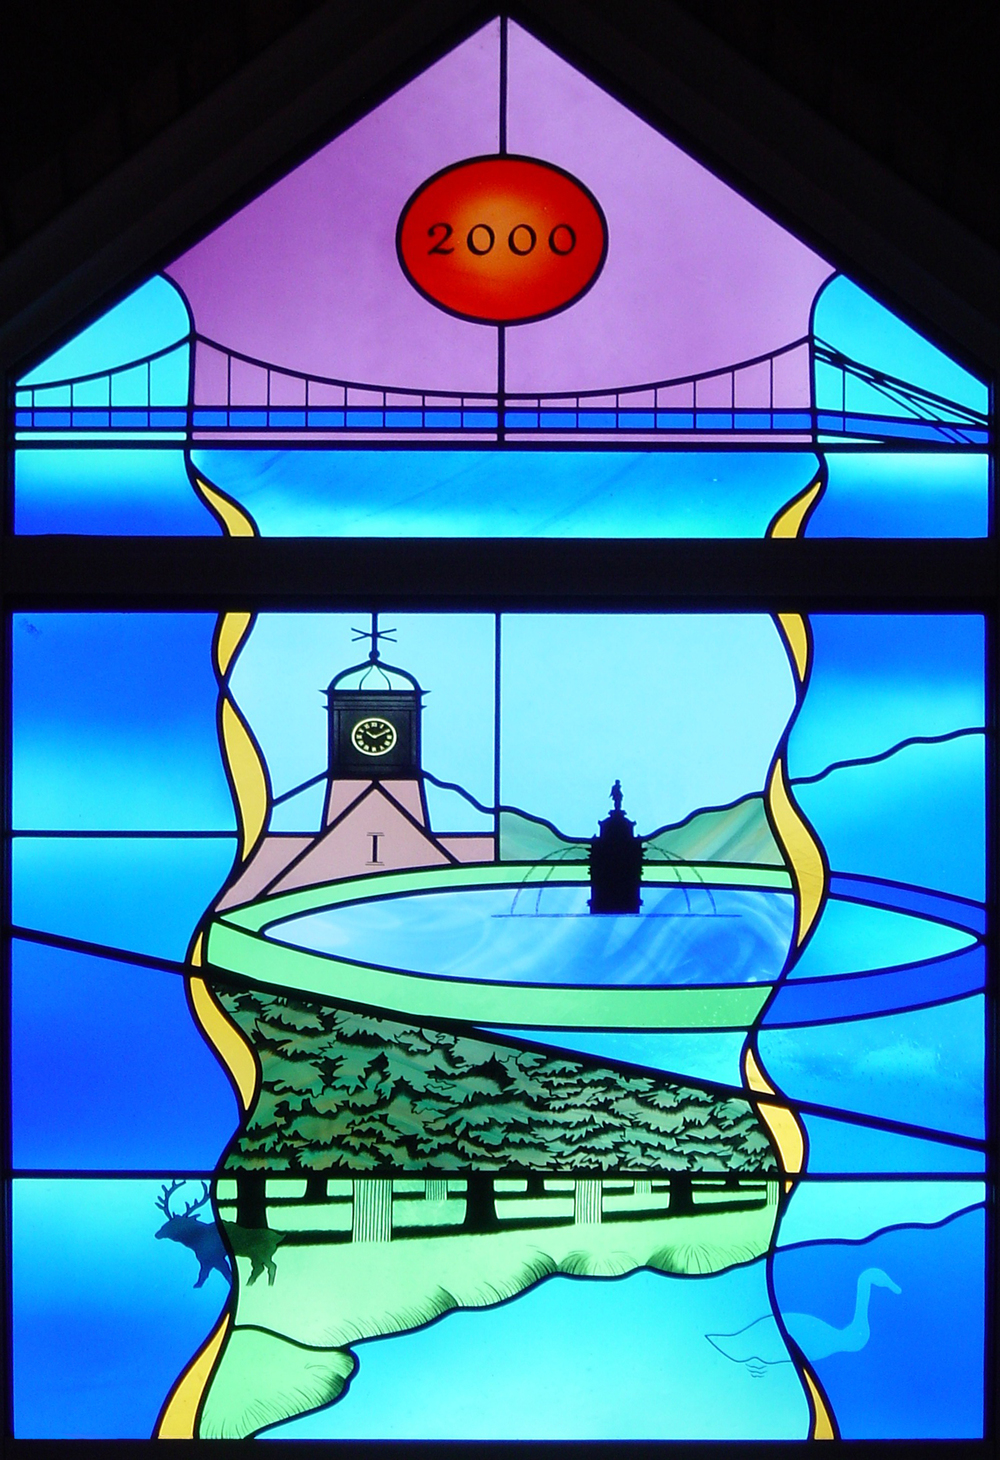 Detail of window for Teddington Memorial Hospital Chapel.